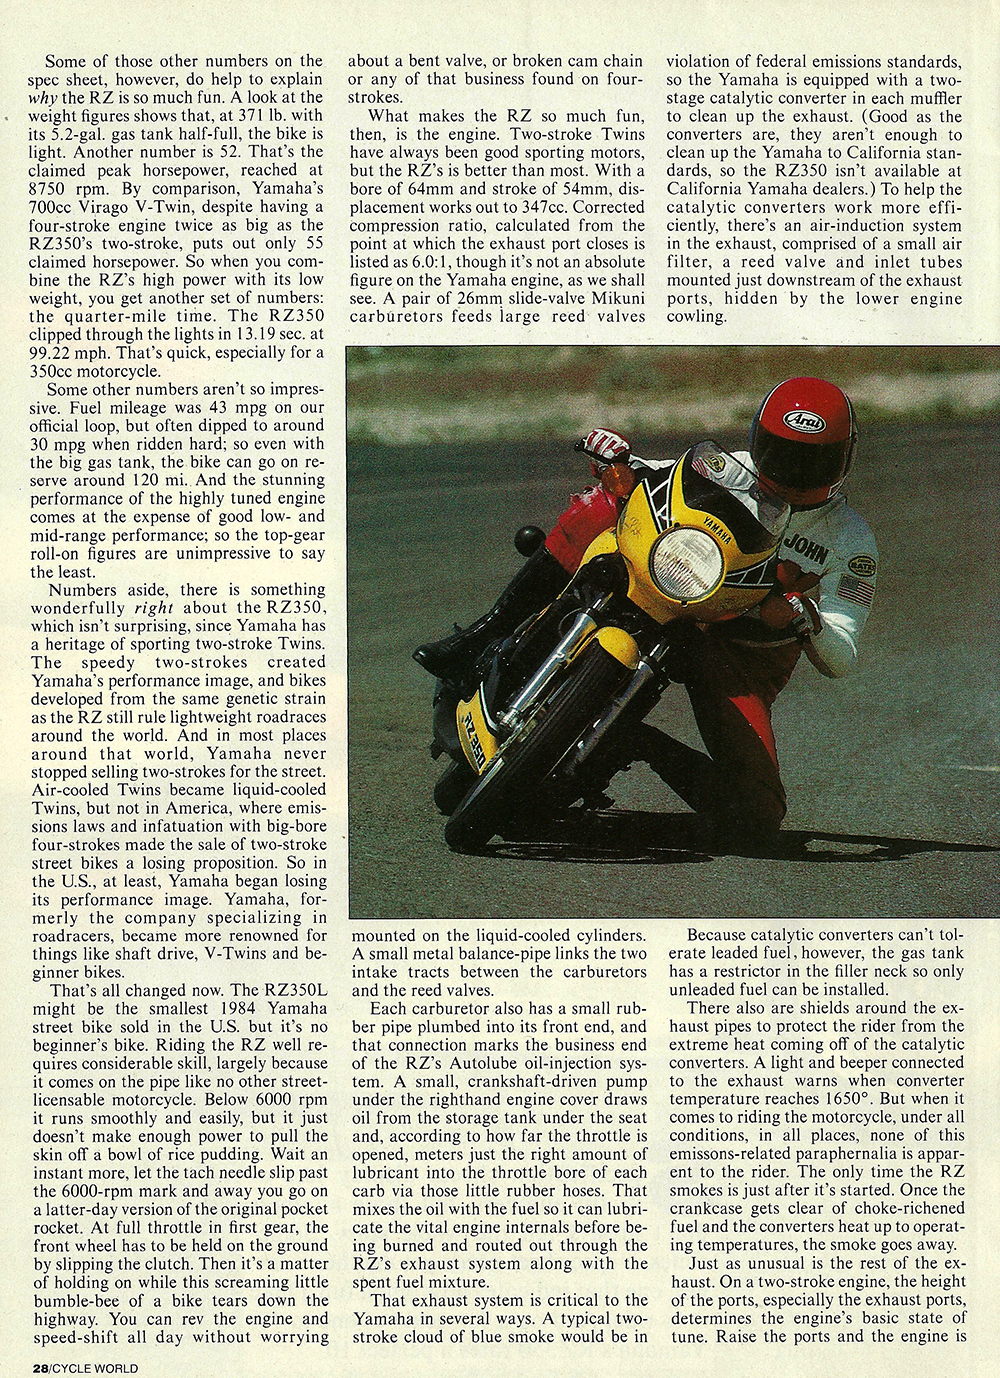 1984 Yamaha RZ350 road test 03.jpg